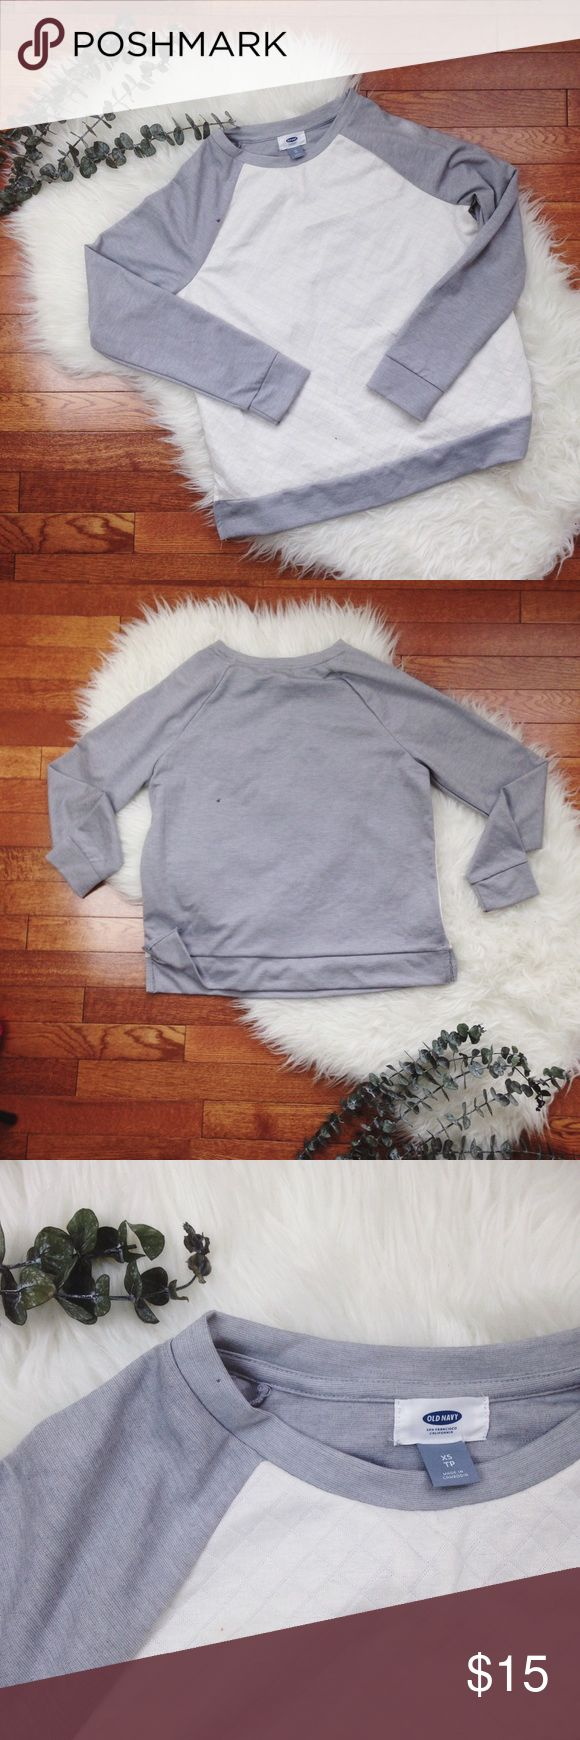 Old Navy Sweatshirt 🎒 NEW🍿 Lightweight grey sweatshirt from Old Navy. Front is quilted. New with tags. Size XS but will fit S and M as well. Old Navy Tops Sweatshirts & Hoodies